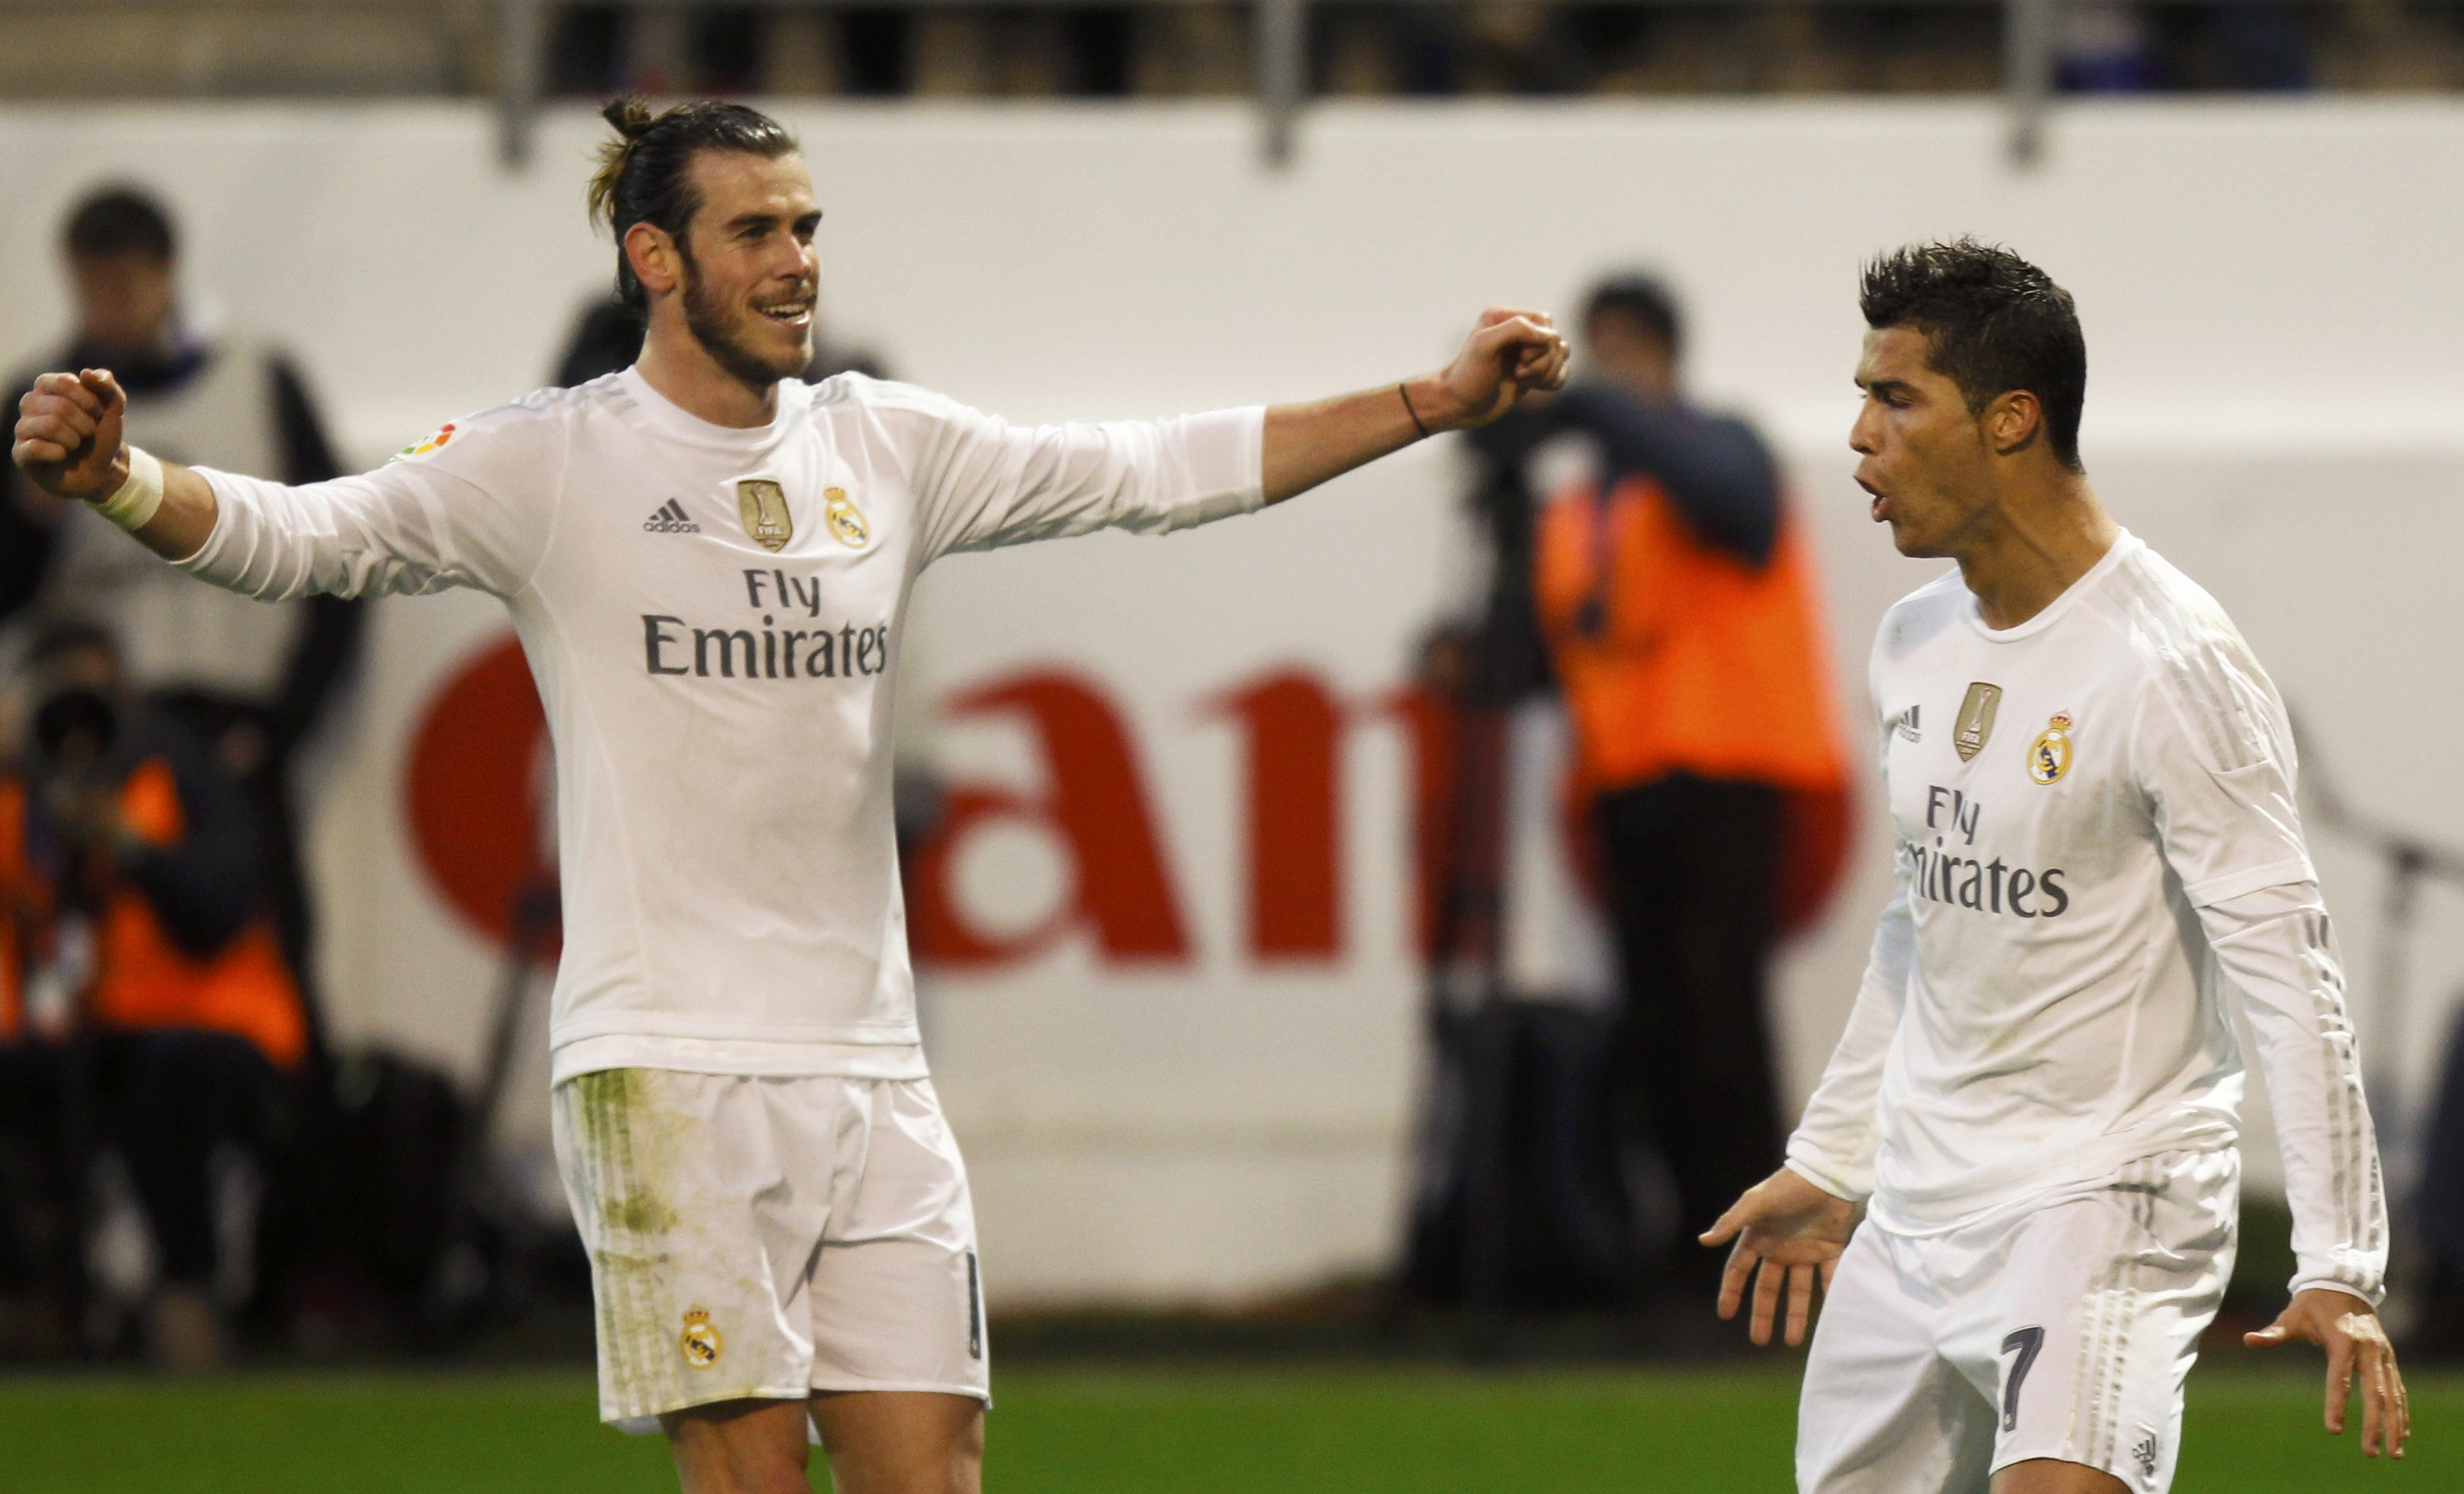 Real Madrid's Cristiano Ronaldo celebrates scoring the second goal with team mate Gareth Bale  during their match with Eibar in Spanish Liga BBVA at Santiago Bernabeu, on November 21, 2015. Photo: Reuters